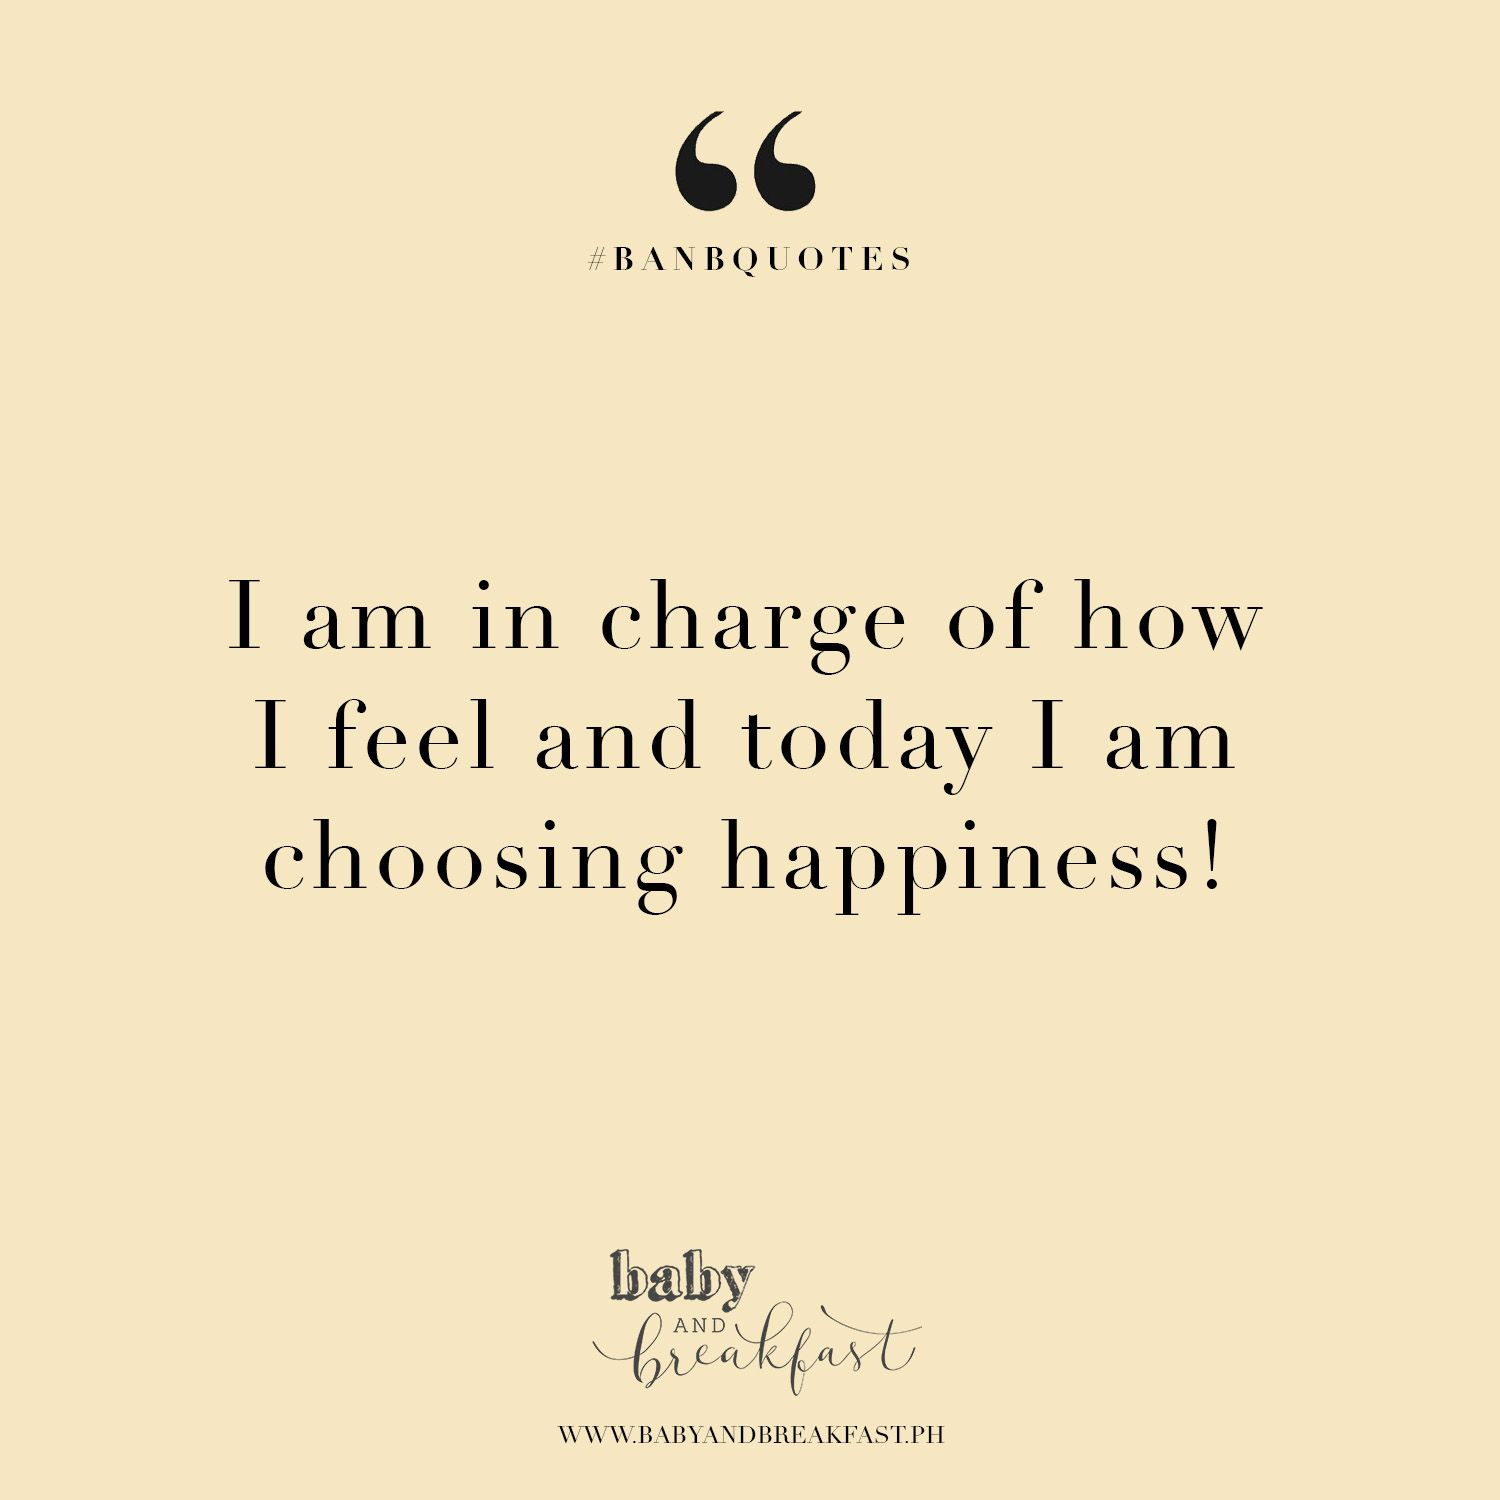 Quote For Today About Happiness I Am In Charge Of How I Feel And Today I Am Choosing Happiness